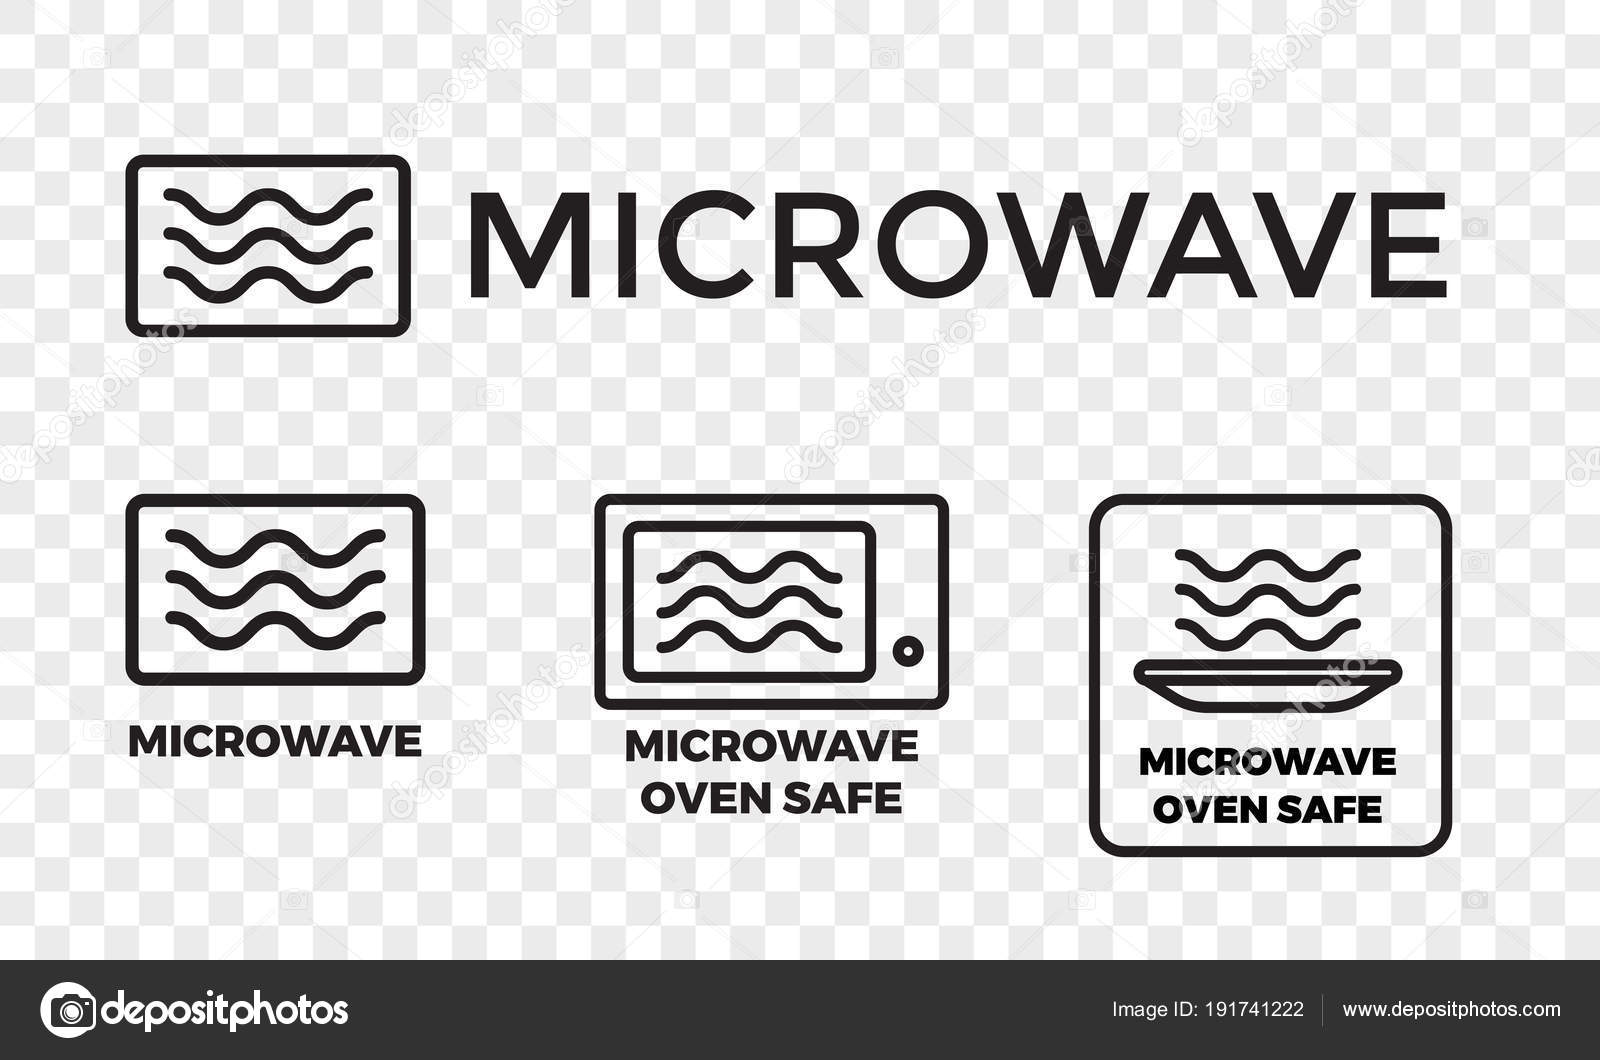 Microwave oven safe icon templates set. Vector isolated